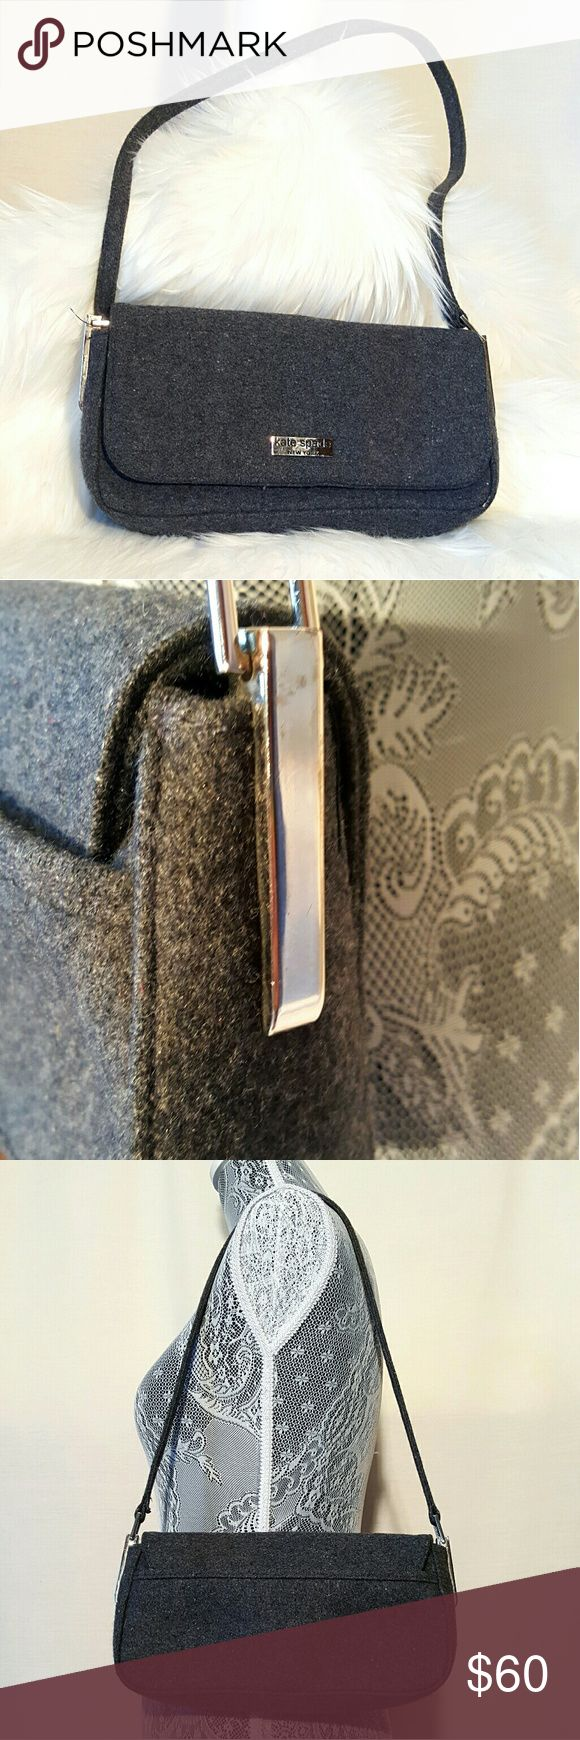 Kate Spade wool felt grey shoulder bag purse Kate Spade wool felt grey shoulder bag purse, excellent condition, no wear observed, magnetic closure, outside slot, inside zipped section  Measurements are approximate  Shoulder strap drop 12 inches 10 inches wide x 5 inches high x 2 inches wide kate spade Bags Shoulder Bags